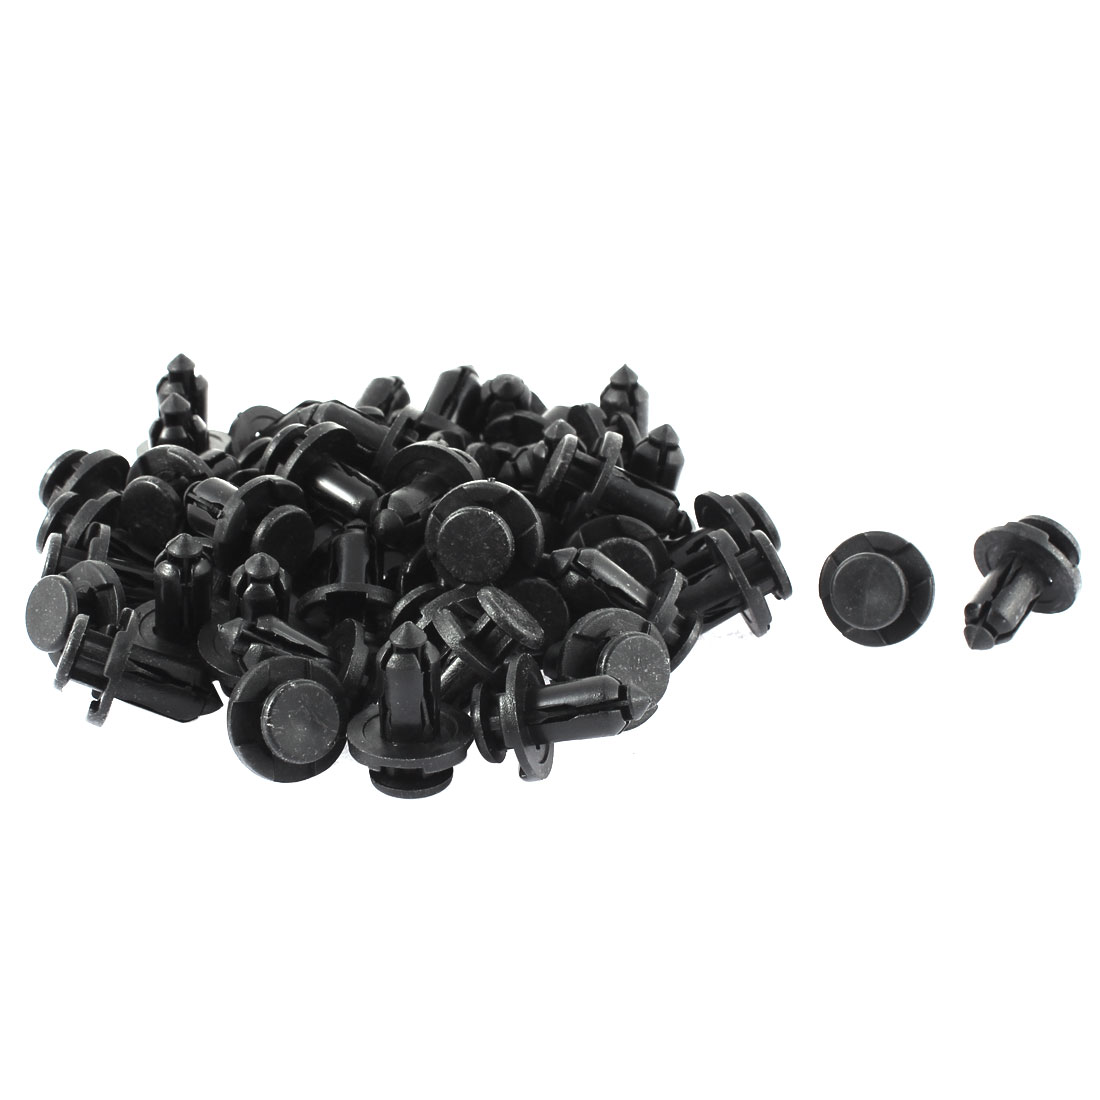 10mm x 20mm x 18mm Plastic Car Bumper Splash Guard Push Clips Rivet 50pcs